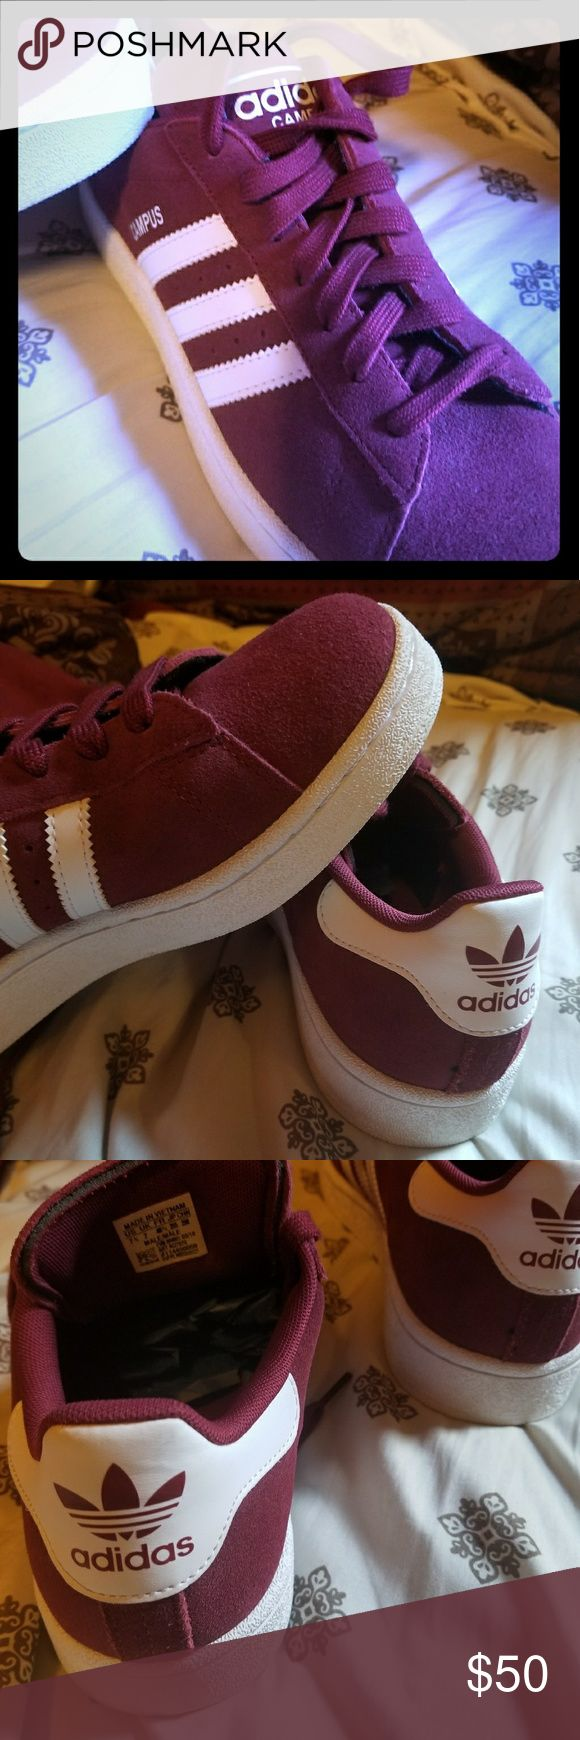 ADIDAS Adidas shoes new without box. adidas Shoes Athletic Shoes